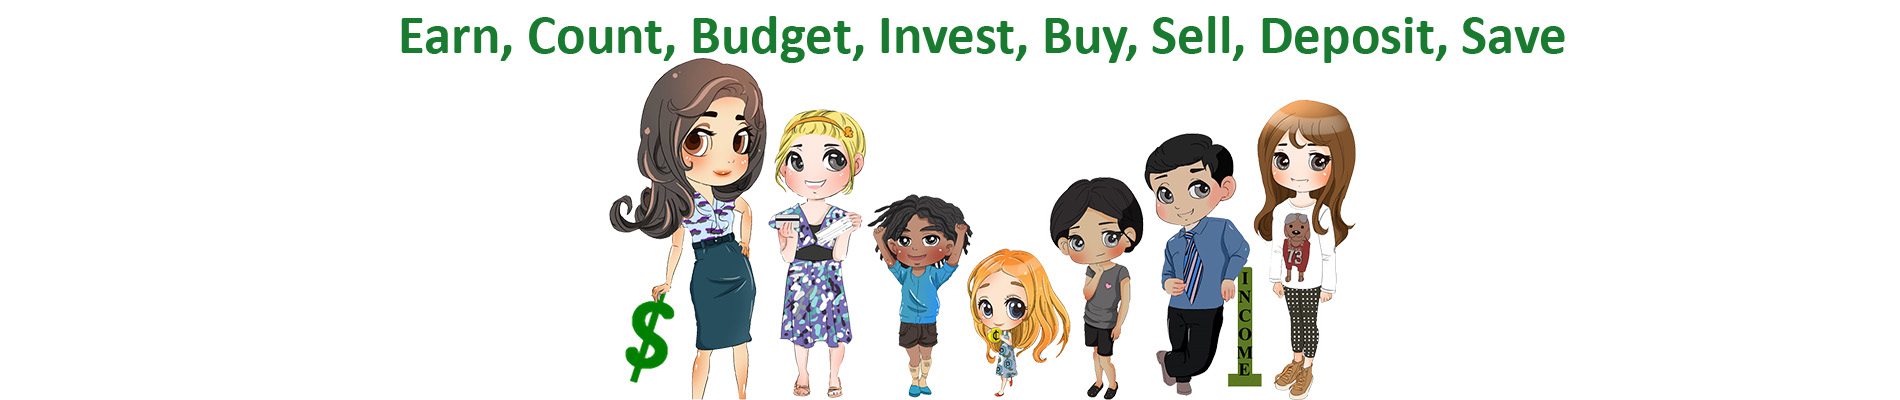 money munchkids count, budget, invest, sell deposit web banner